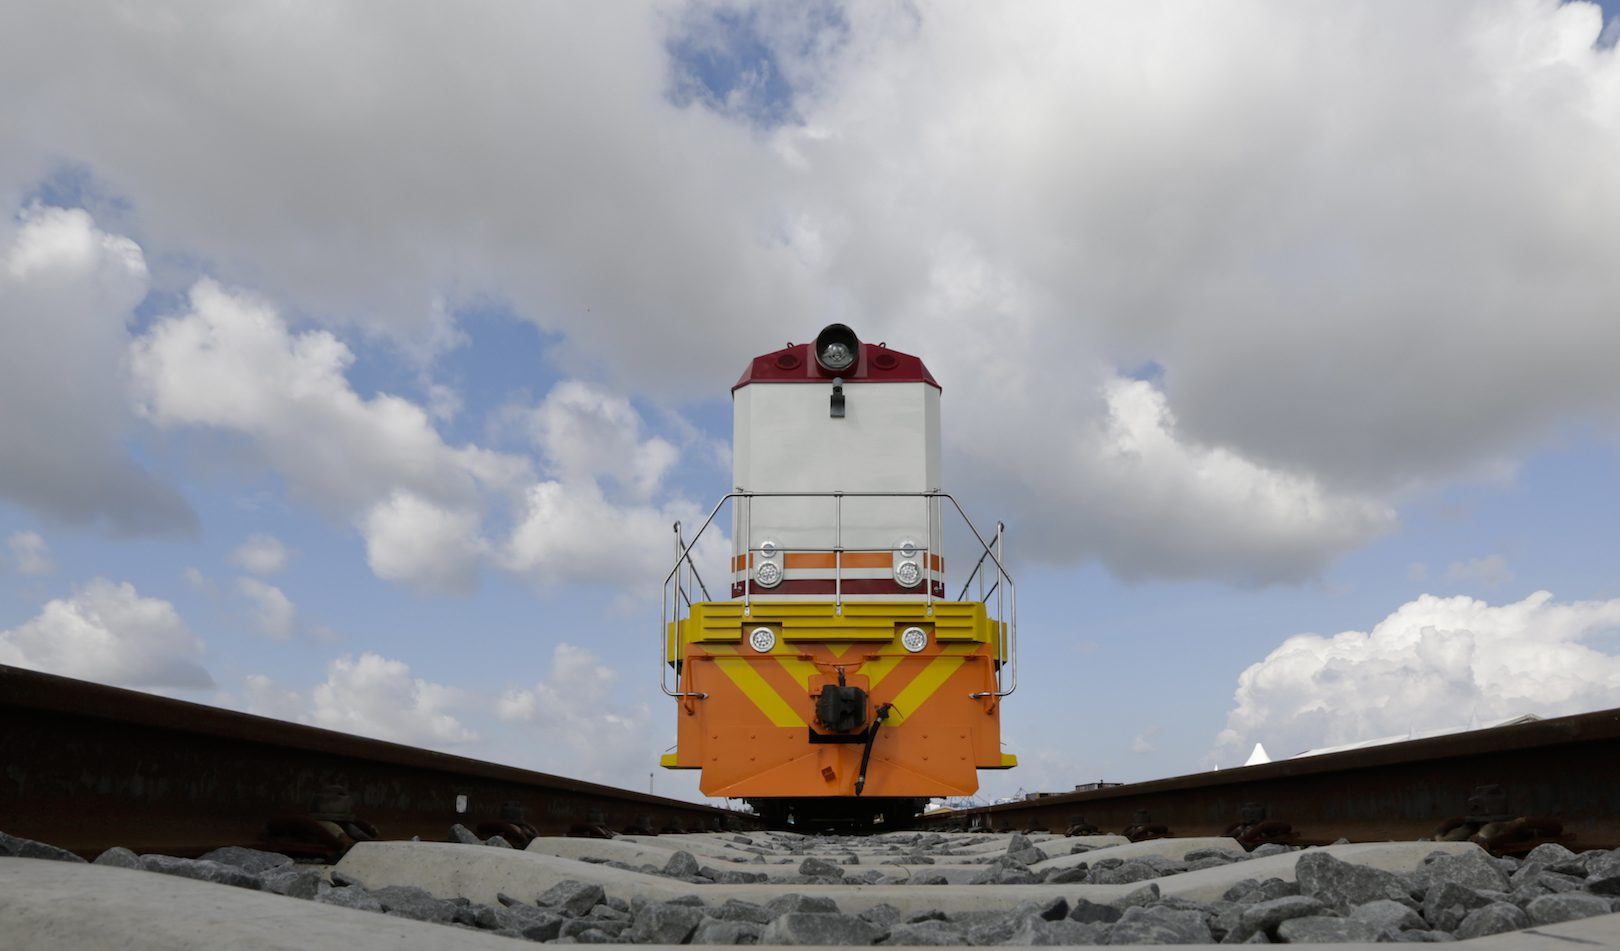 A new Kenya Railways locomotive which will be used to transport cargo freight using the new Mombasa to Nairobi Standard Gauge Railway (SGR) that had been constructed by the China Road and Bridge Corporation (CRBC) and was financed by Chinese government, is parked during an official flag off ceremony of the new cargo train by President Uhuru Kenyatta (not pictured) at port reitz in Mombasa, Kenya, 30 May 2017. The newly constructed SGR is expected to enhance business between the two cities by providing fast and affordable means of transportation.